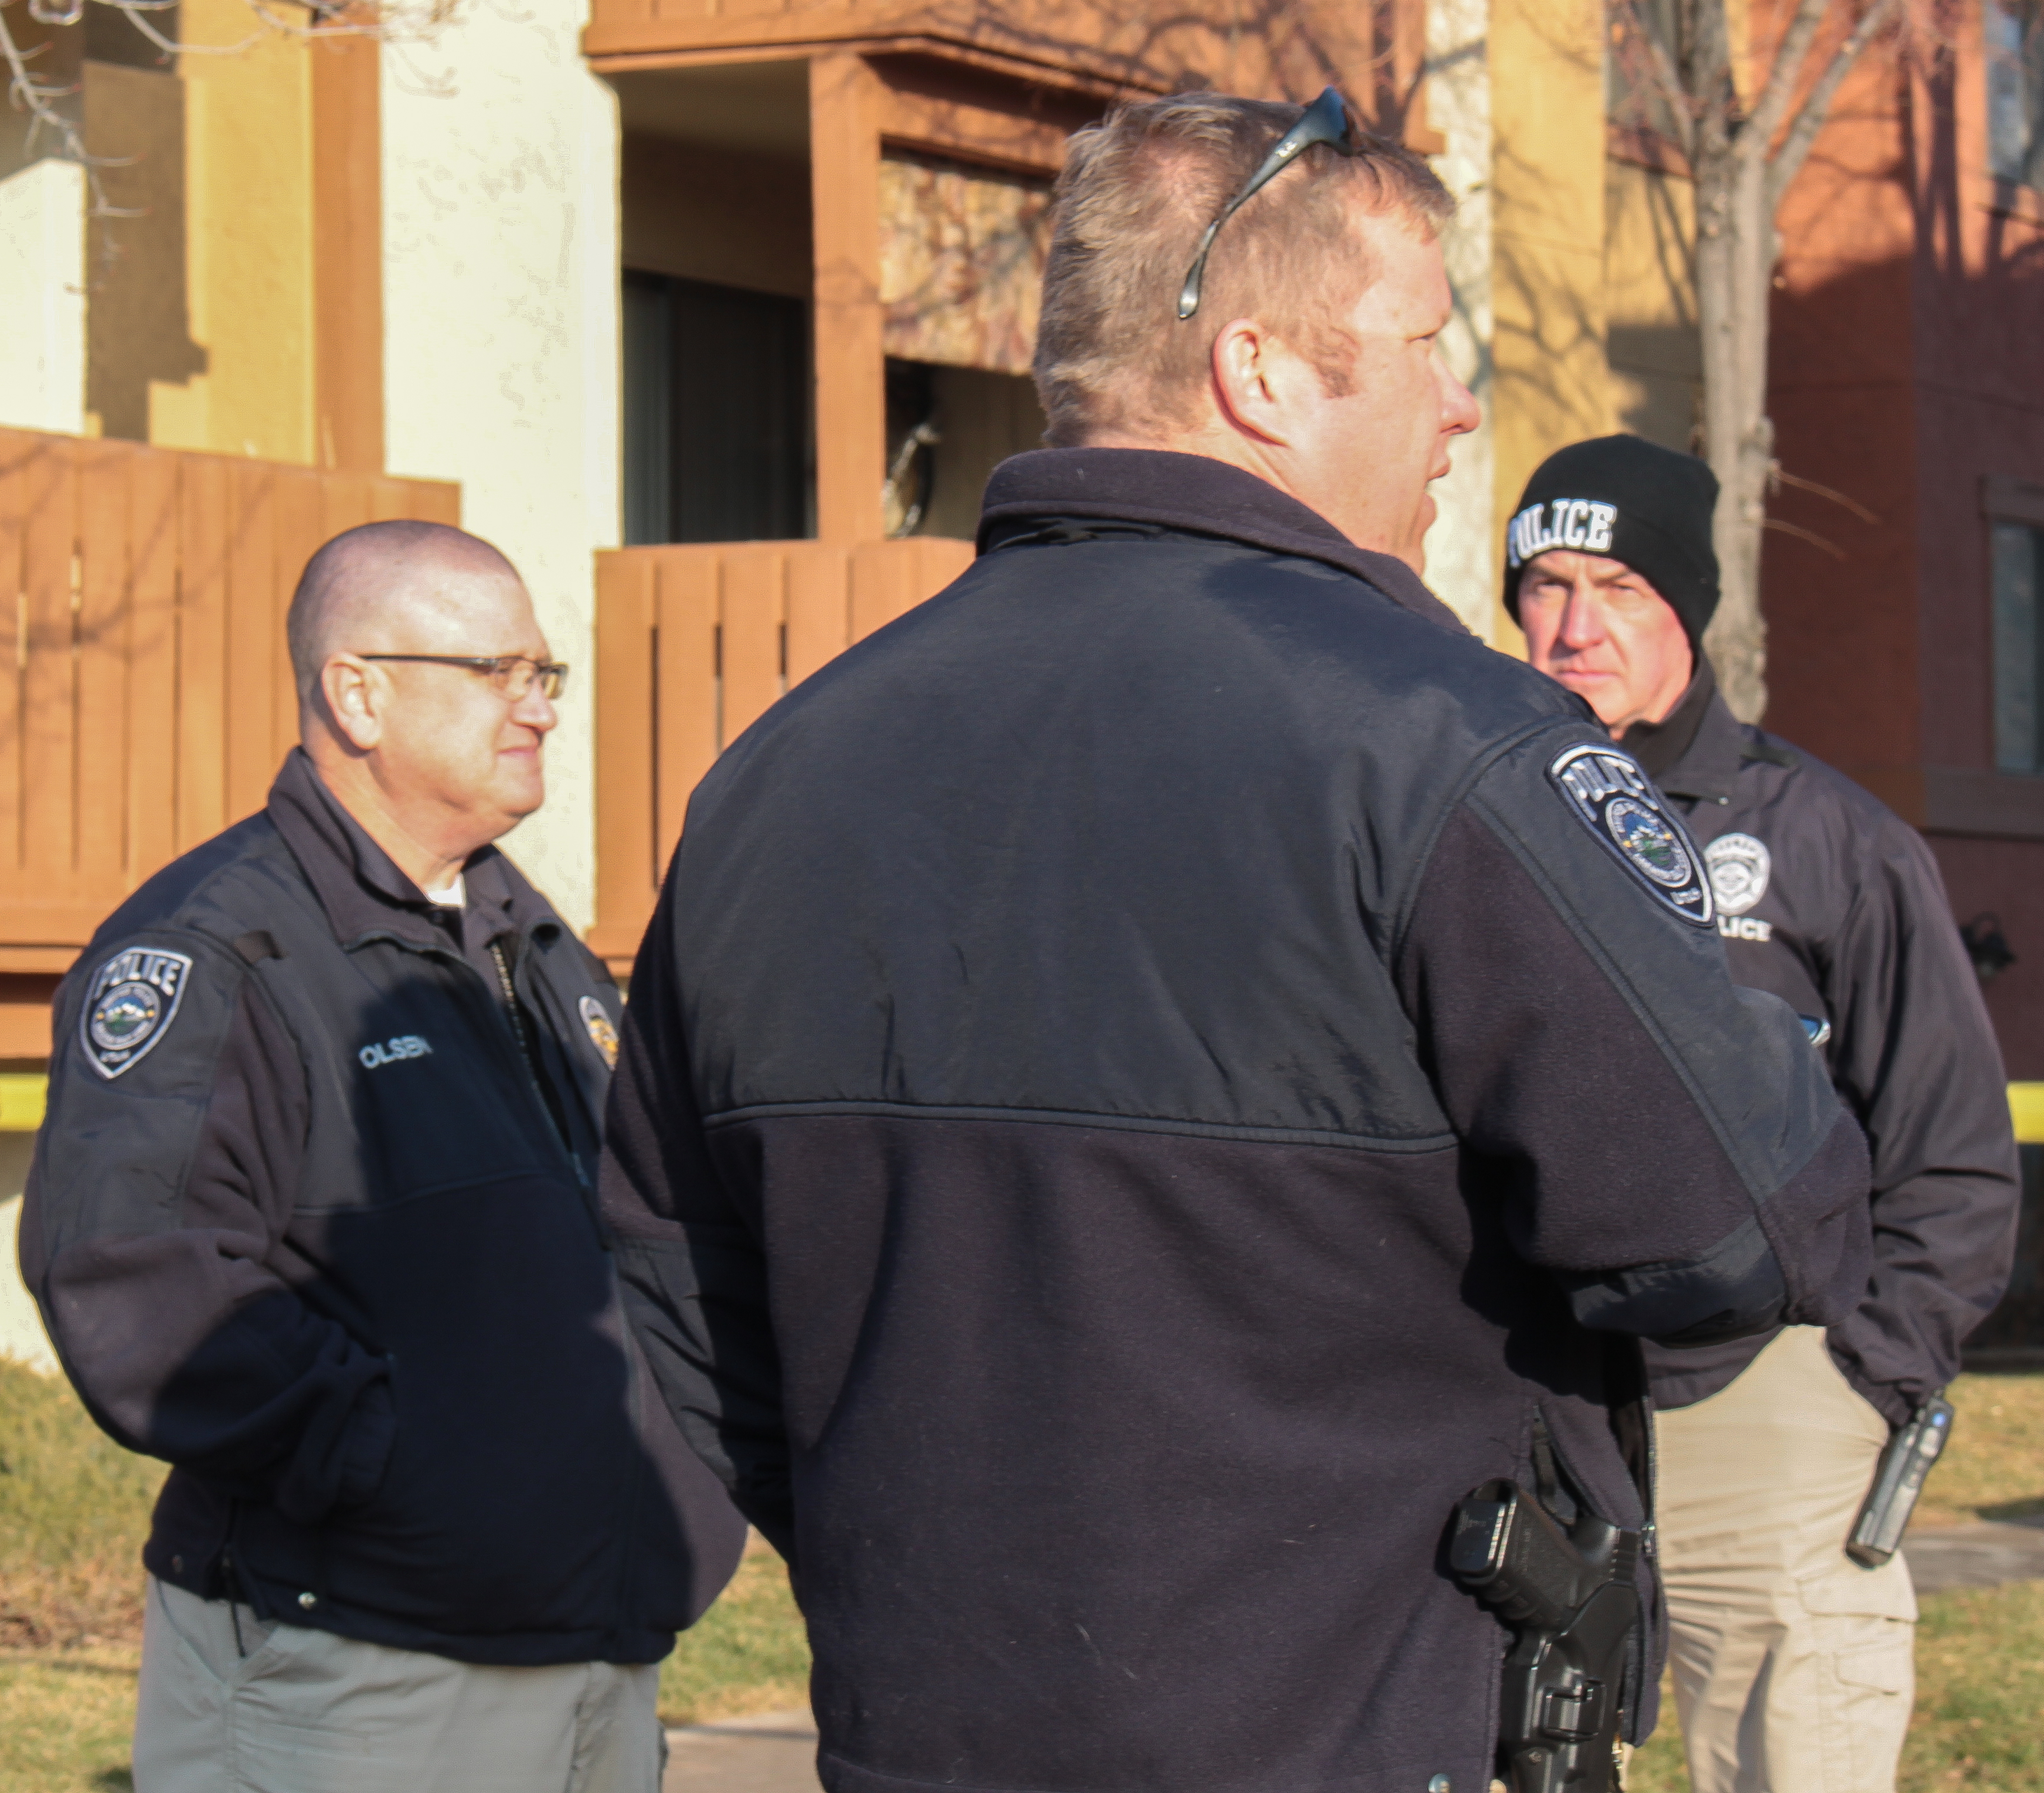 Update: Midvale Shooting Was Result Of Altercation After